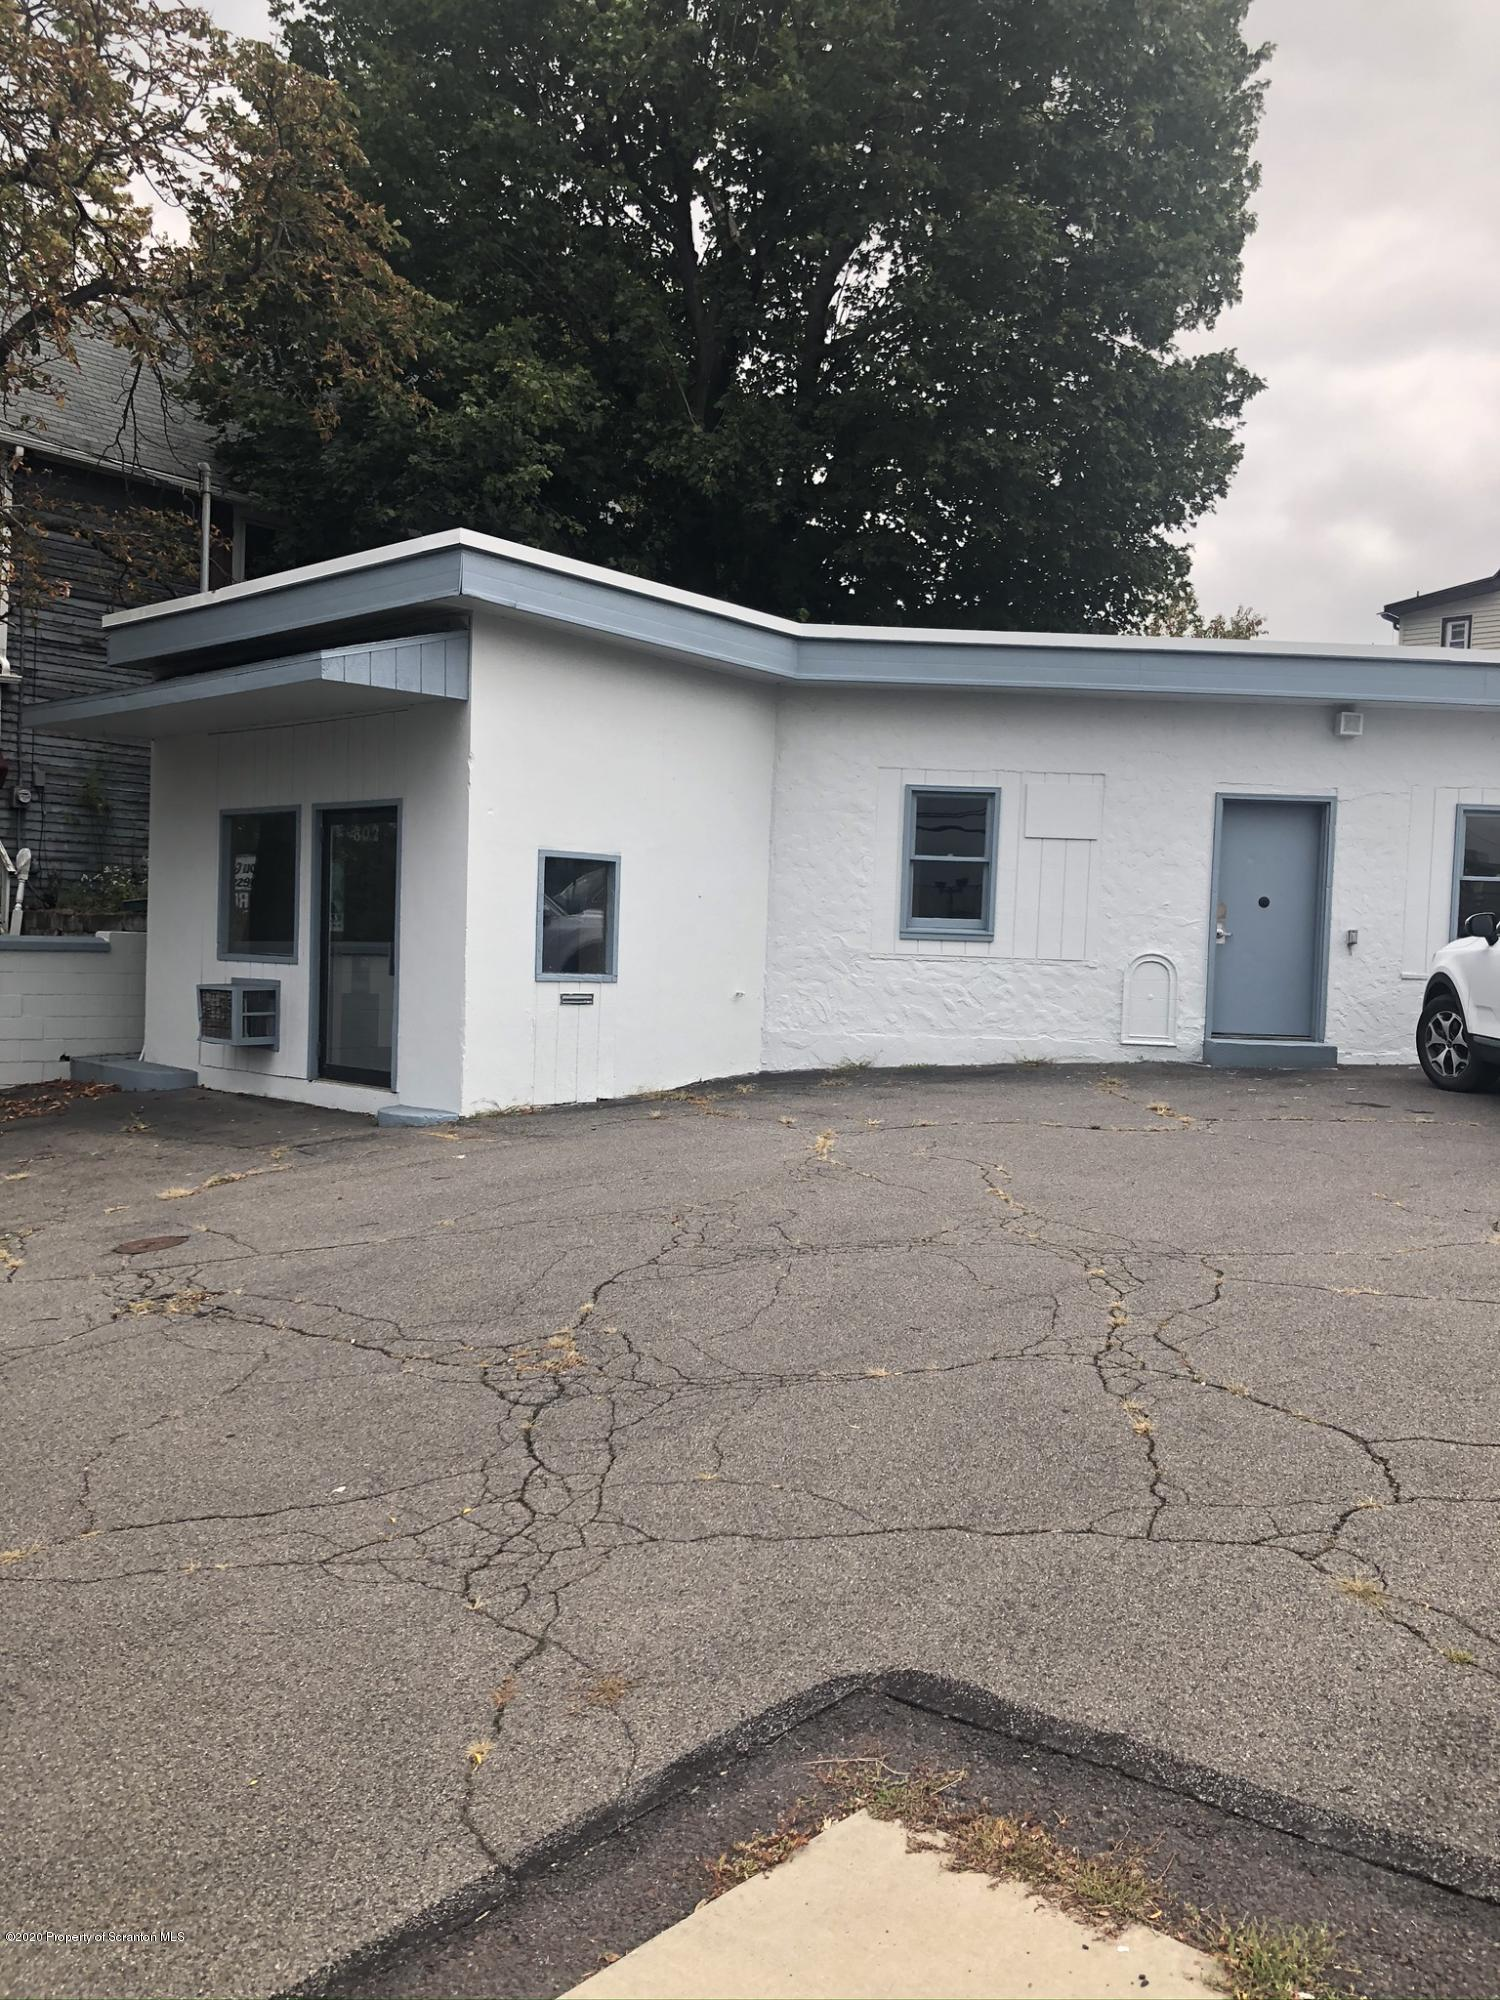 802 Wash, Scranton, Pennsylvania 18509, ,1 BathroomBathrooms,Commercial,For Sale,Wash,20-4185